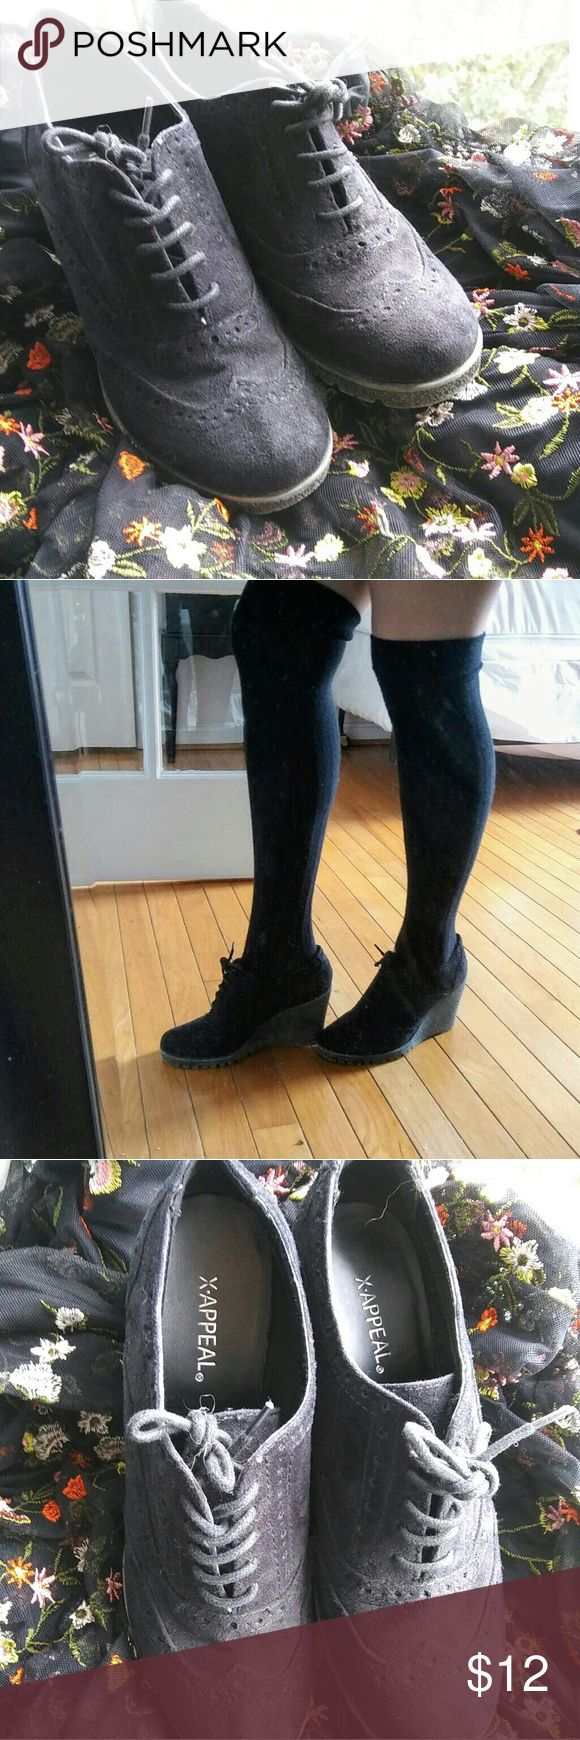 X-Appeal black oxford wedge booties These oxford wedge booties will add a cute intellectual vibe to any outfit. These are size 7.5 and have been worn 5 times. The soles, bottoms, and laces are in great condition, but the bottom heel is a little worn as seen in the photo. Therefore, these are very negotiable. Xappeal Shoes Ankle Boots & Booties